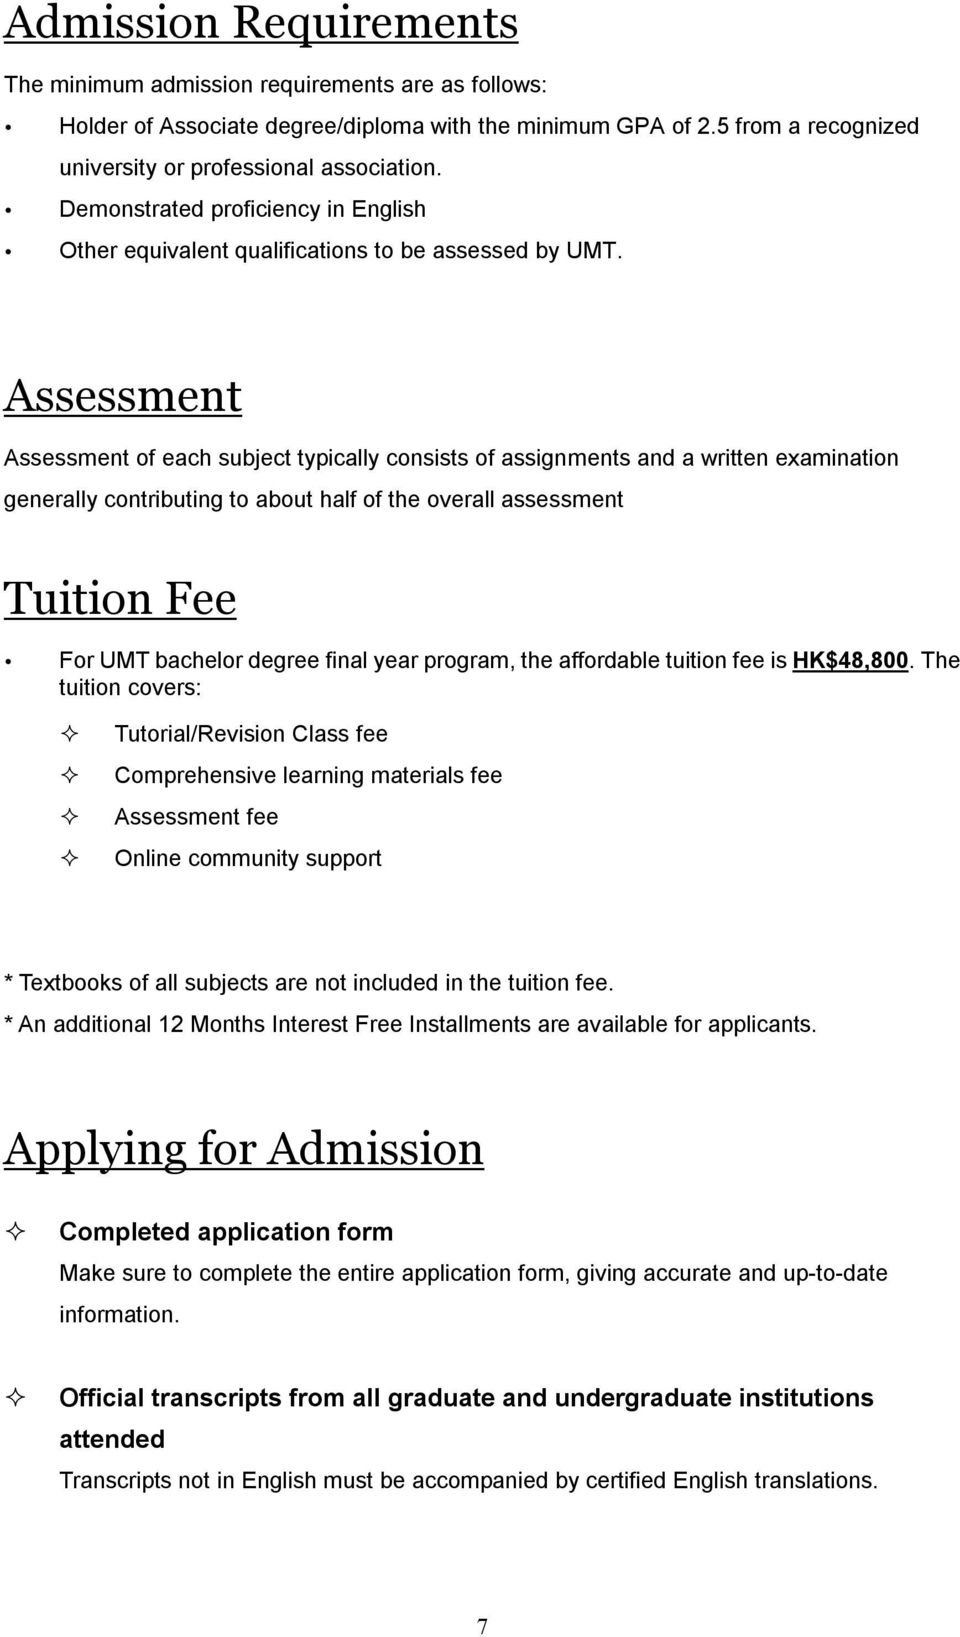 Assessment Assessment of each subject typically consists of assignments and a written examination generally contributing to about half of the overall assessment Tuition Fee For UMT bachelor degree